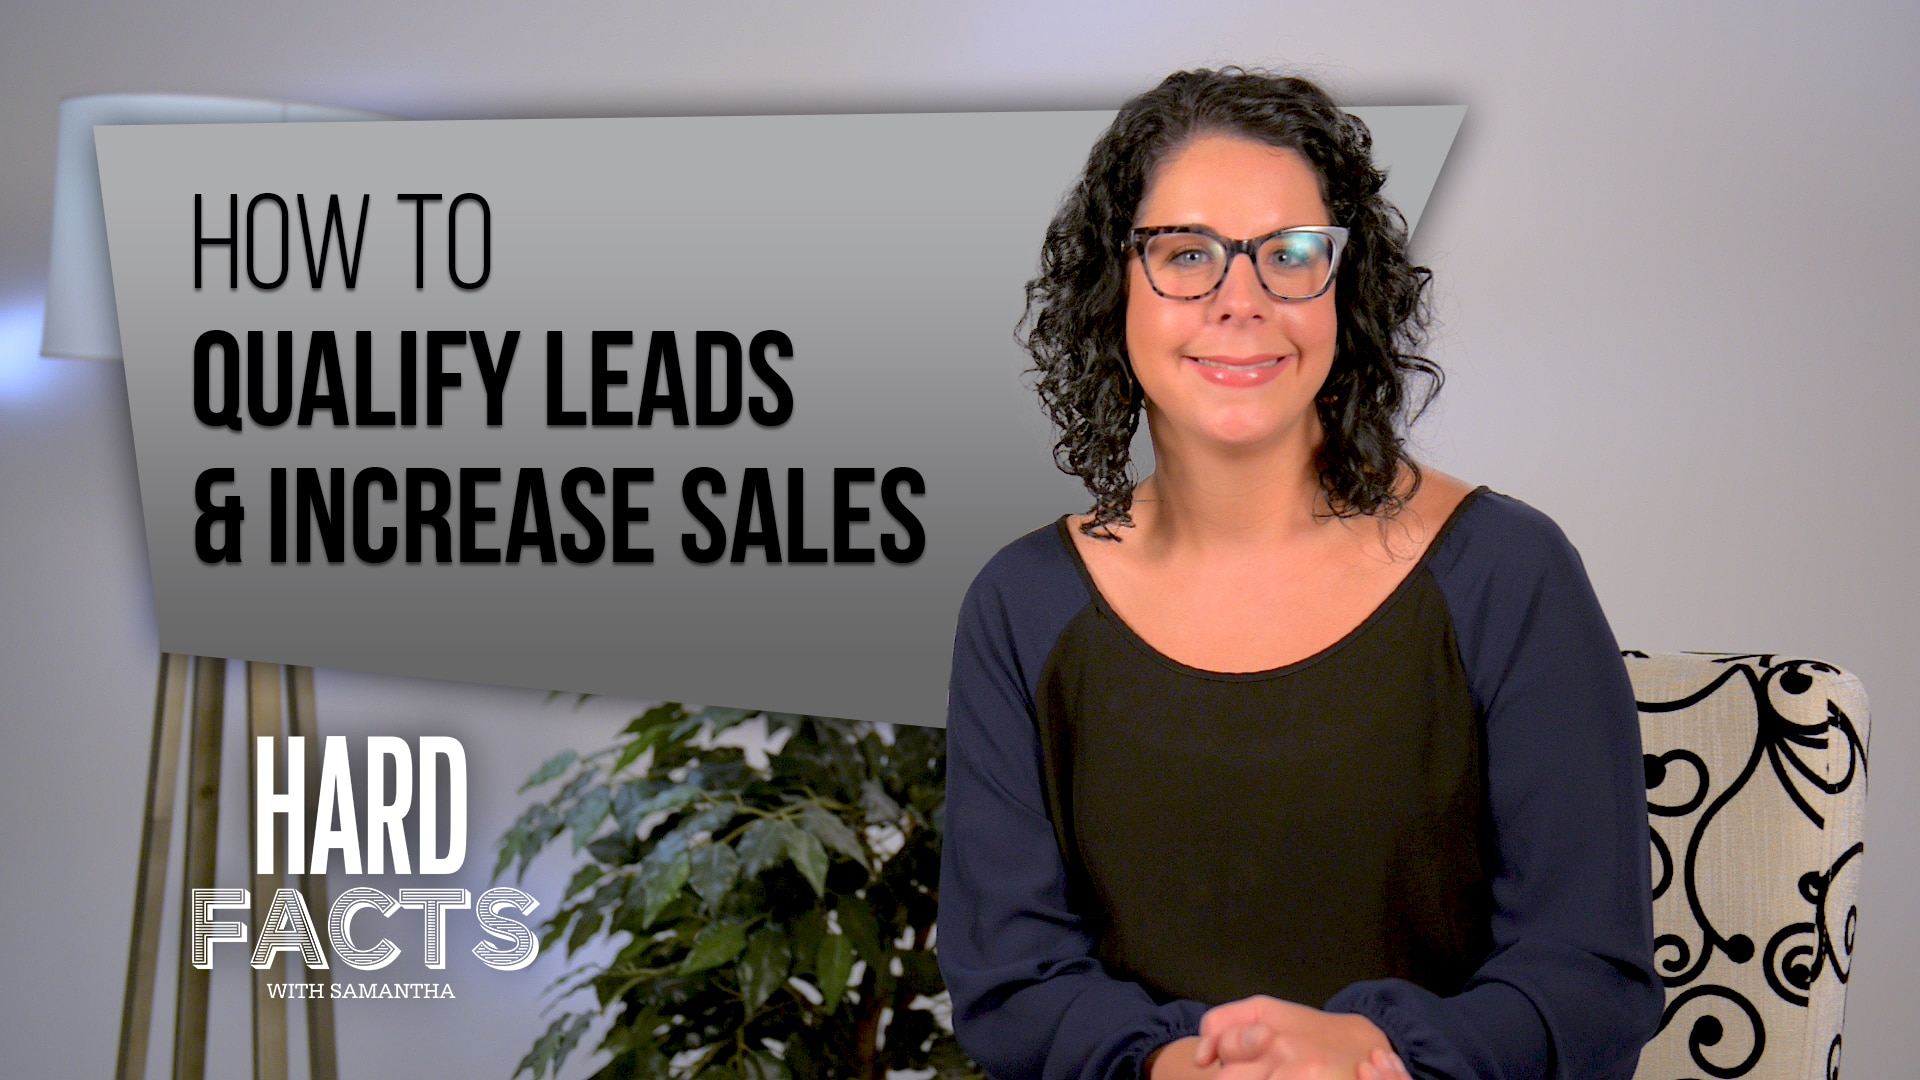 How to Qualify Leads & Increase Sales